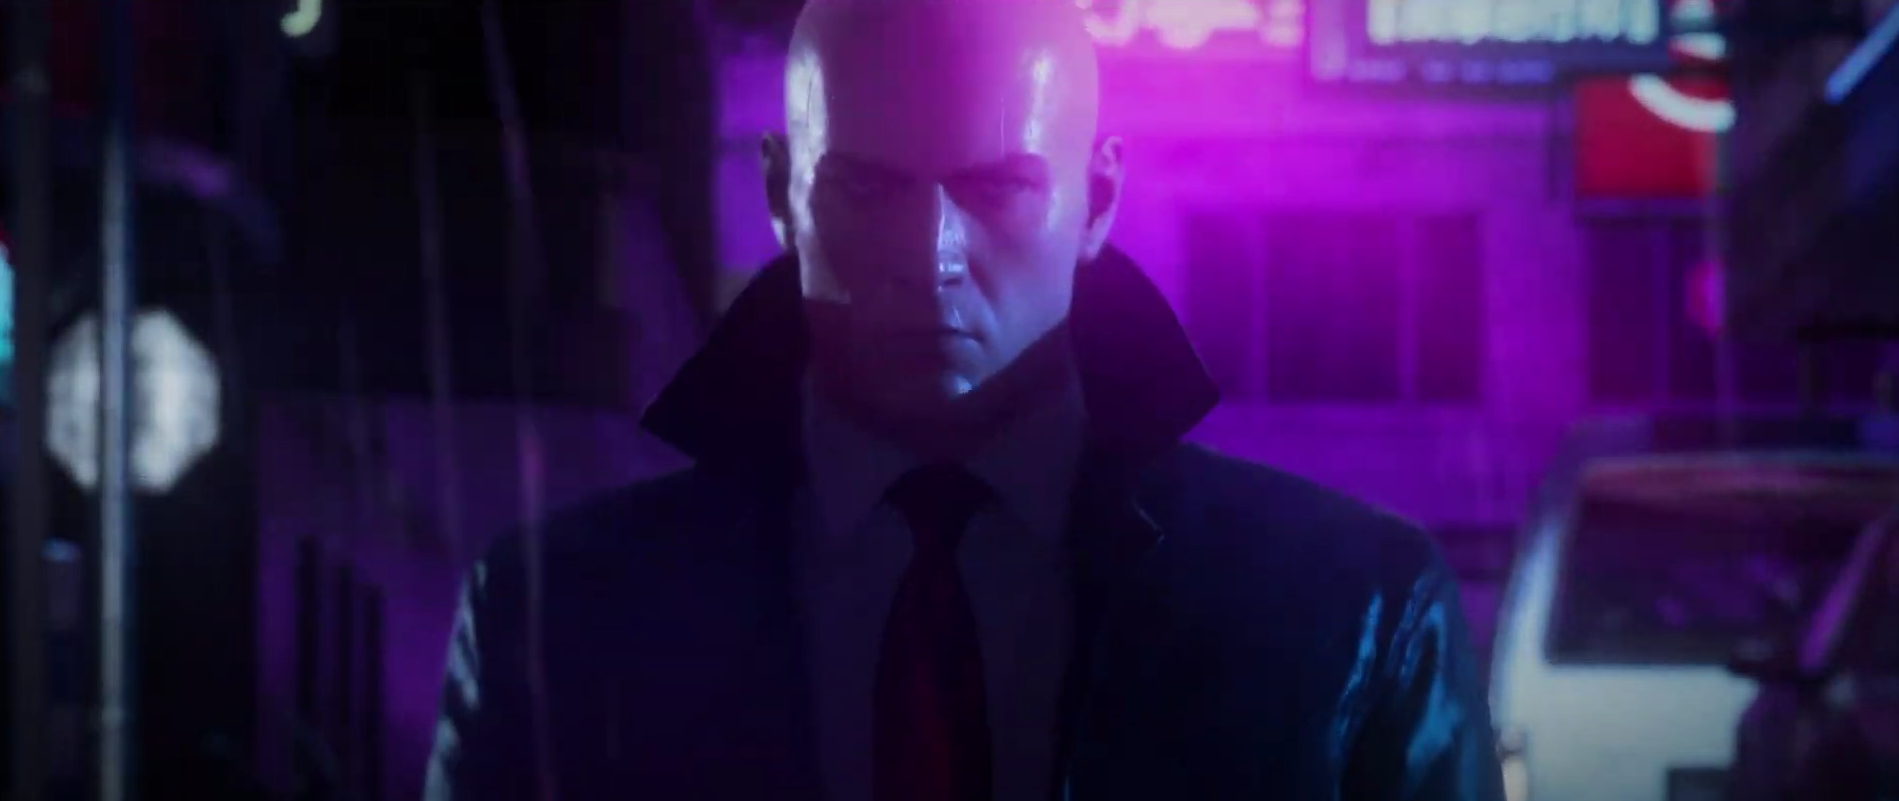 Hitman 3's engine will support over 300 active NPCs at once